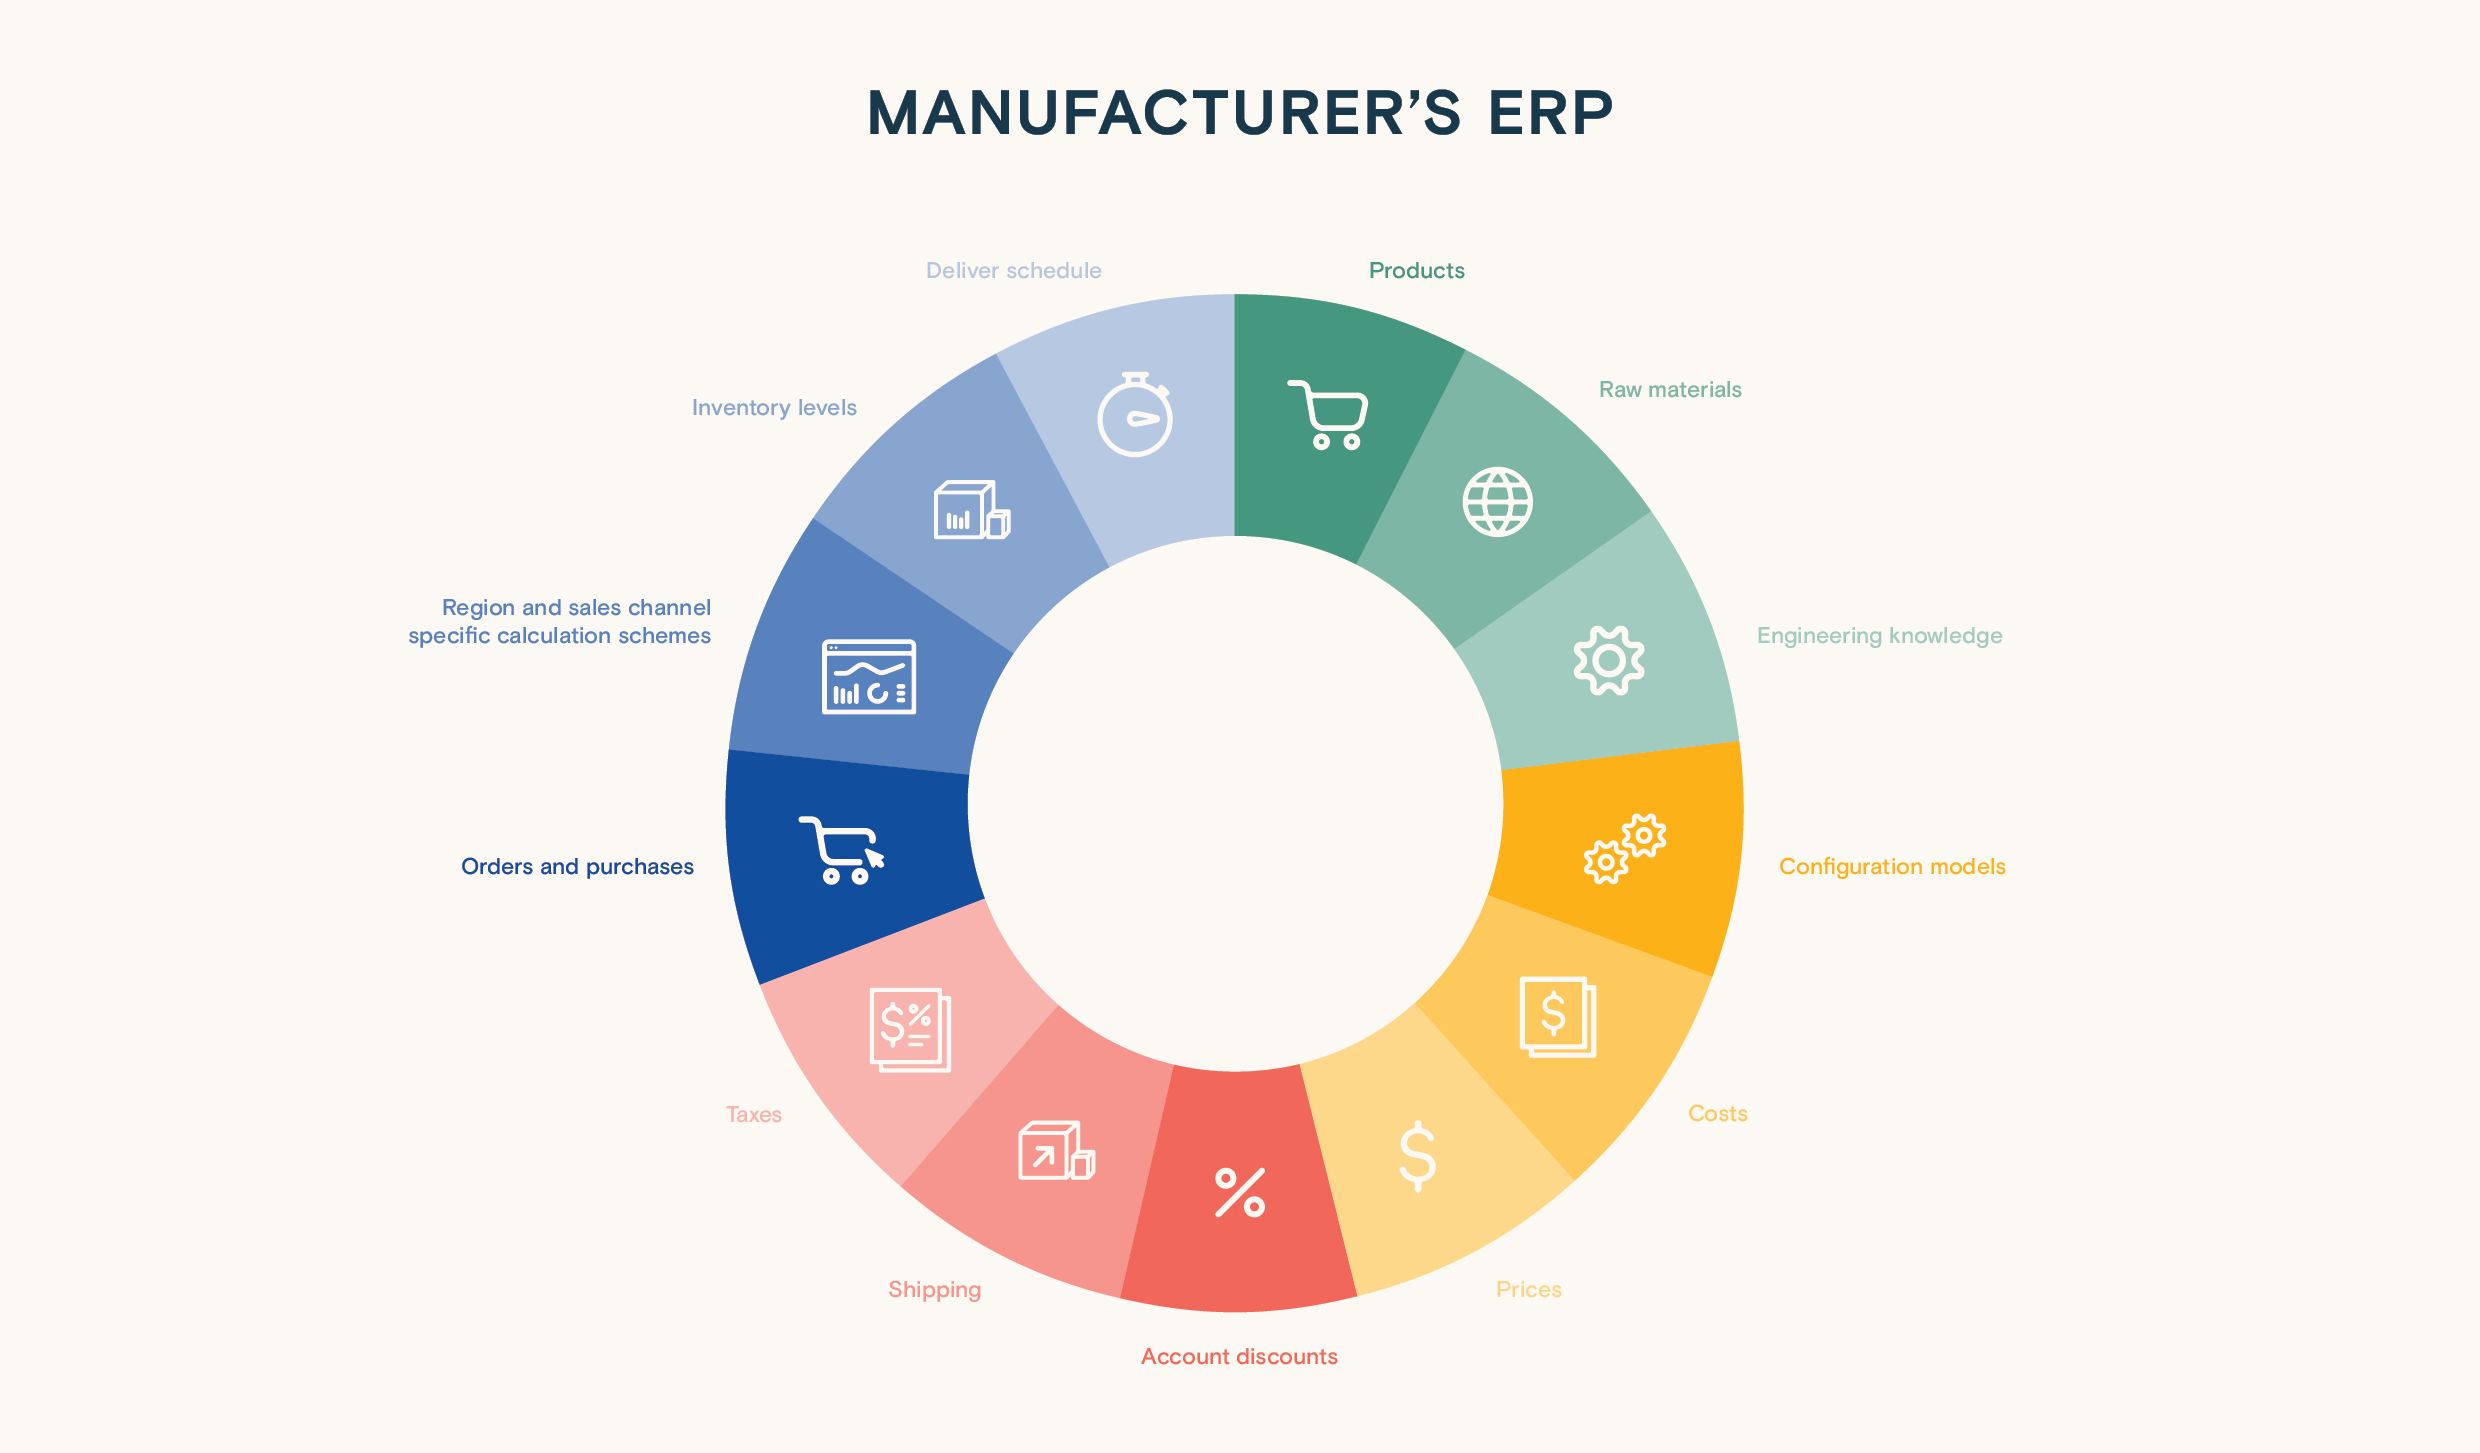 Valuable sales data Electrical Equipment manufacturers can extract from their ERP